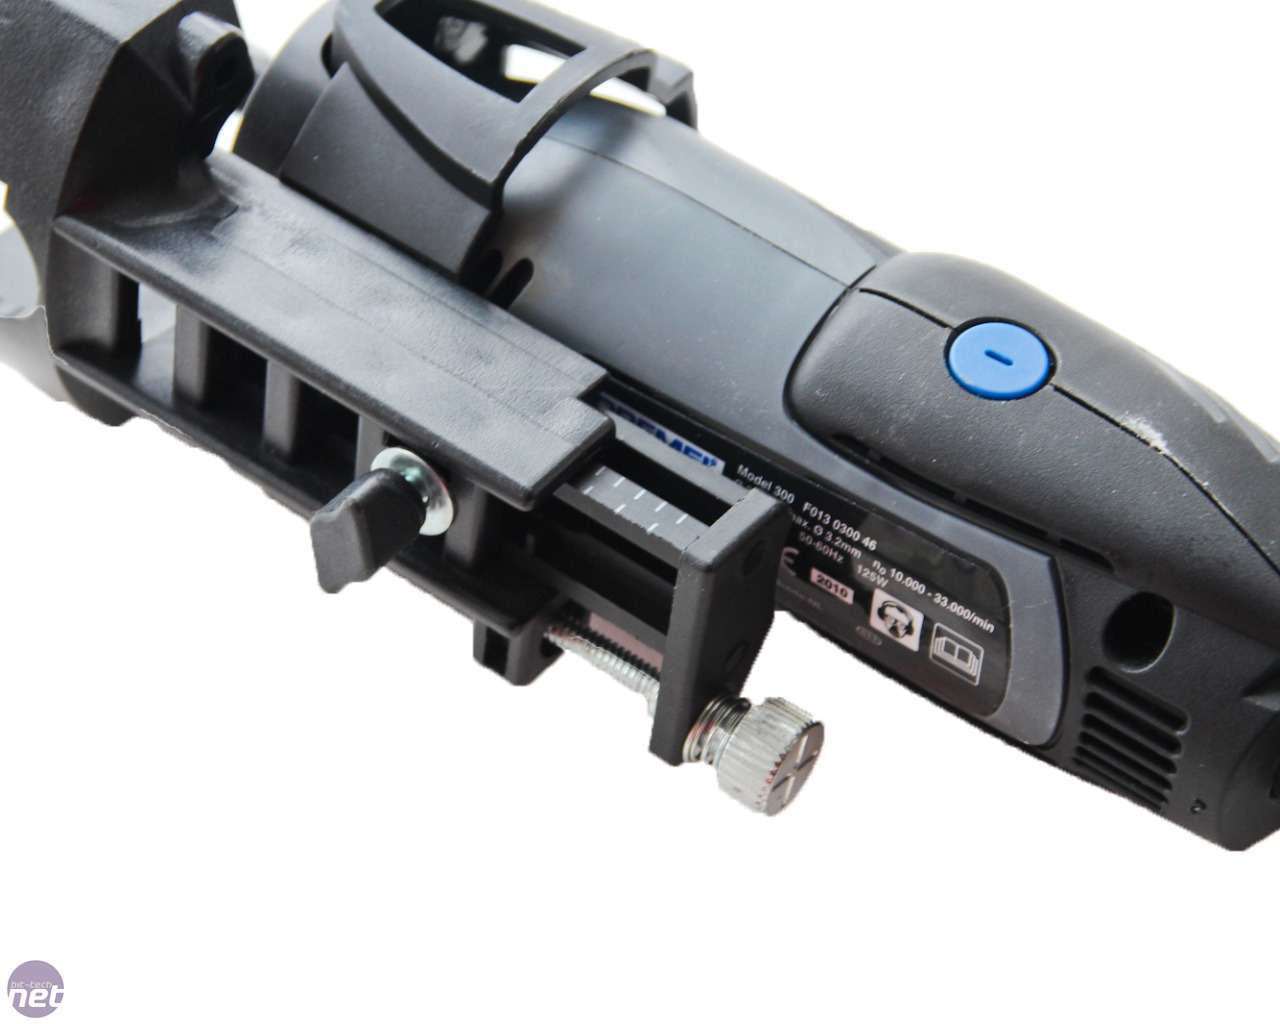 Location Dremel Dremel Shaper Router Table Review Bit Tech